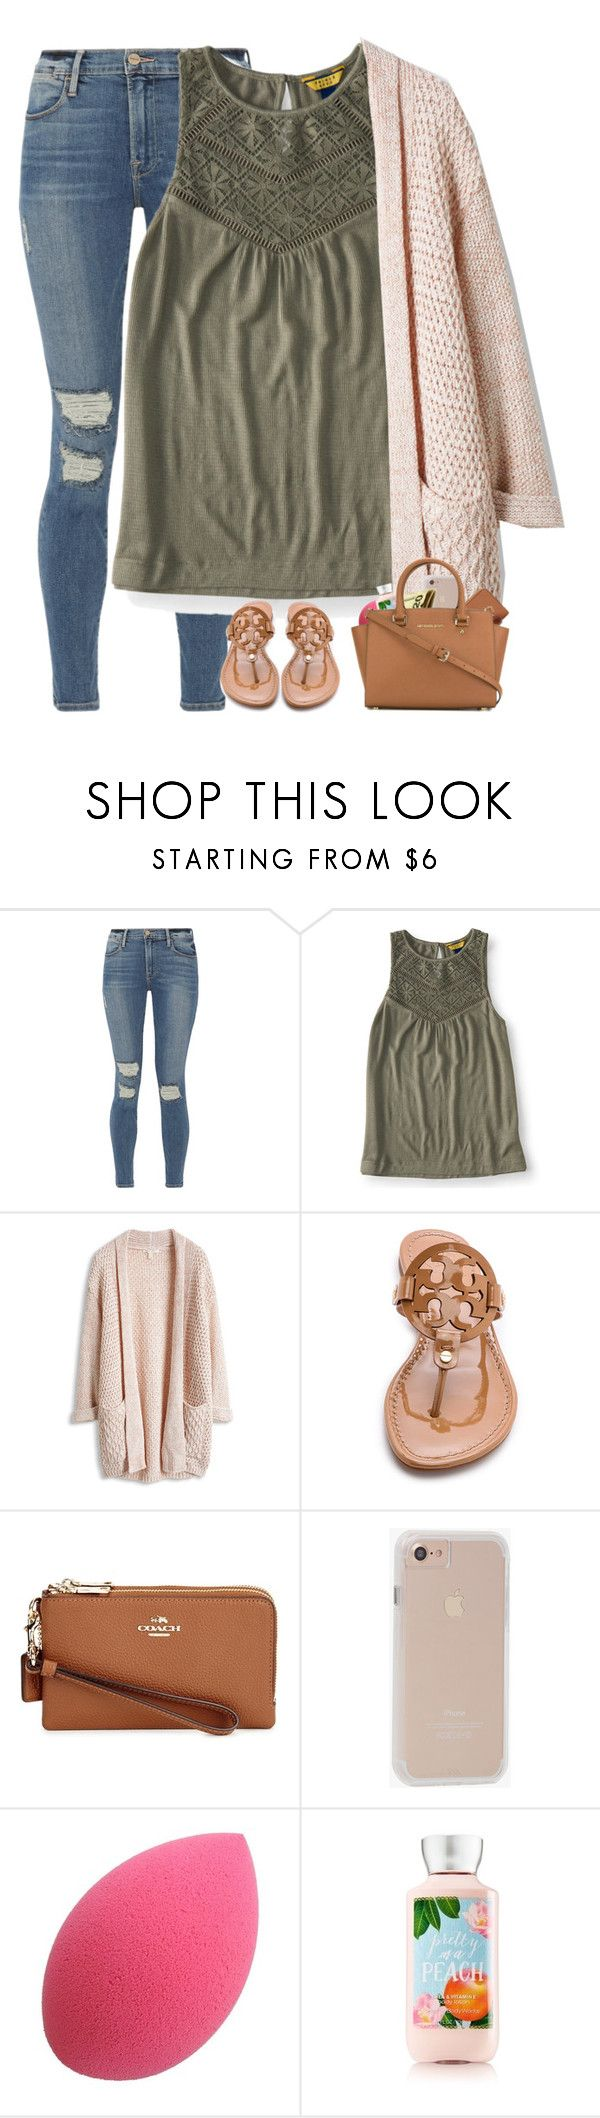 """Tennis starts Wednesday "" by haleyfrancis ❤ liked on Polyvore featuring Frame, Aéropostale, Tory Burch, Coach, Case-Mate and MICHAEL Michael Kors"